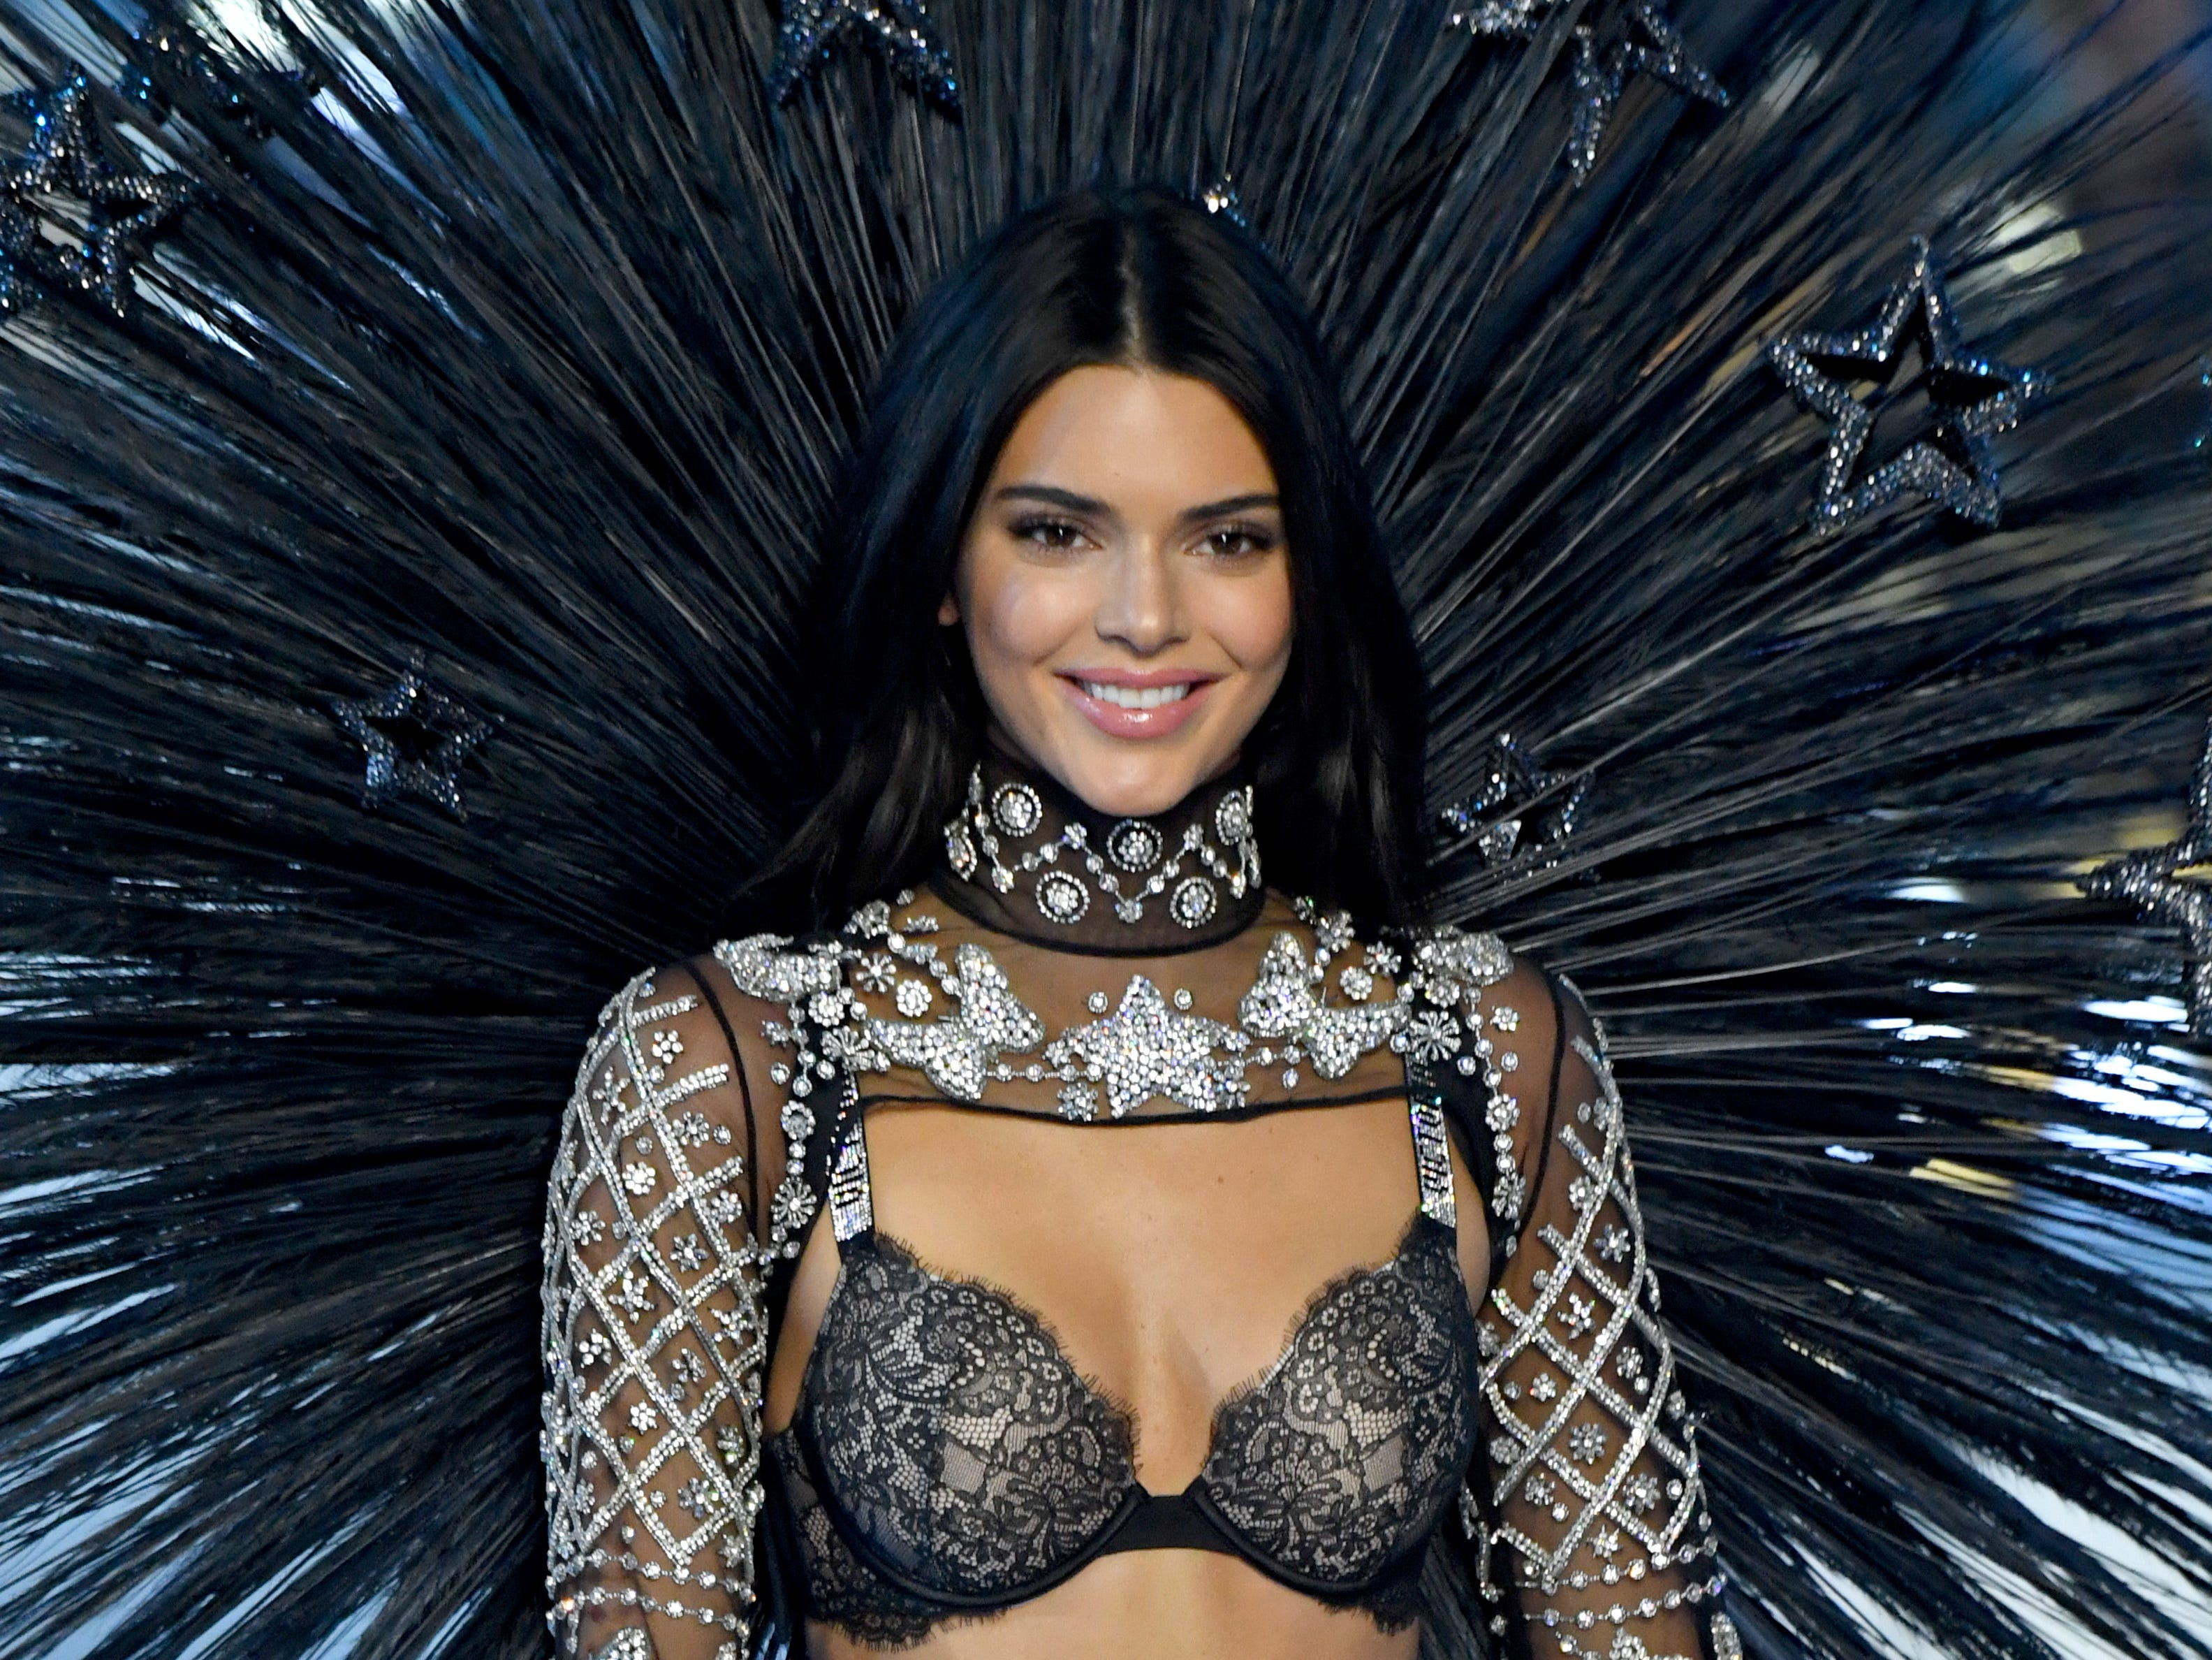 NEW YORK, NY - NOVEMBER 08:  Kendall Jenner walks the runway during the 2018 Victoria's Secret Fashion Show at Pier 94 on November 8, 2018 in New York City.  (Photo by Kevin Mazur/WireImage) ORG XMIT: 775255601 ORIG FILE ID: 1059371562